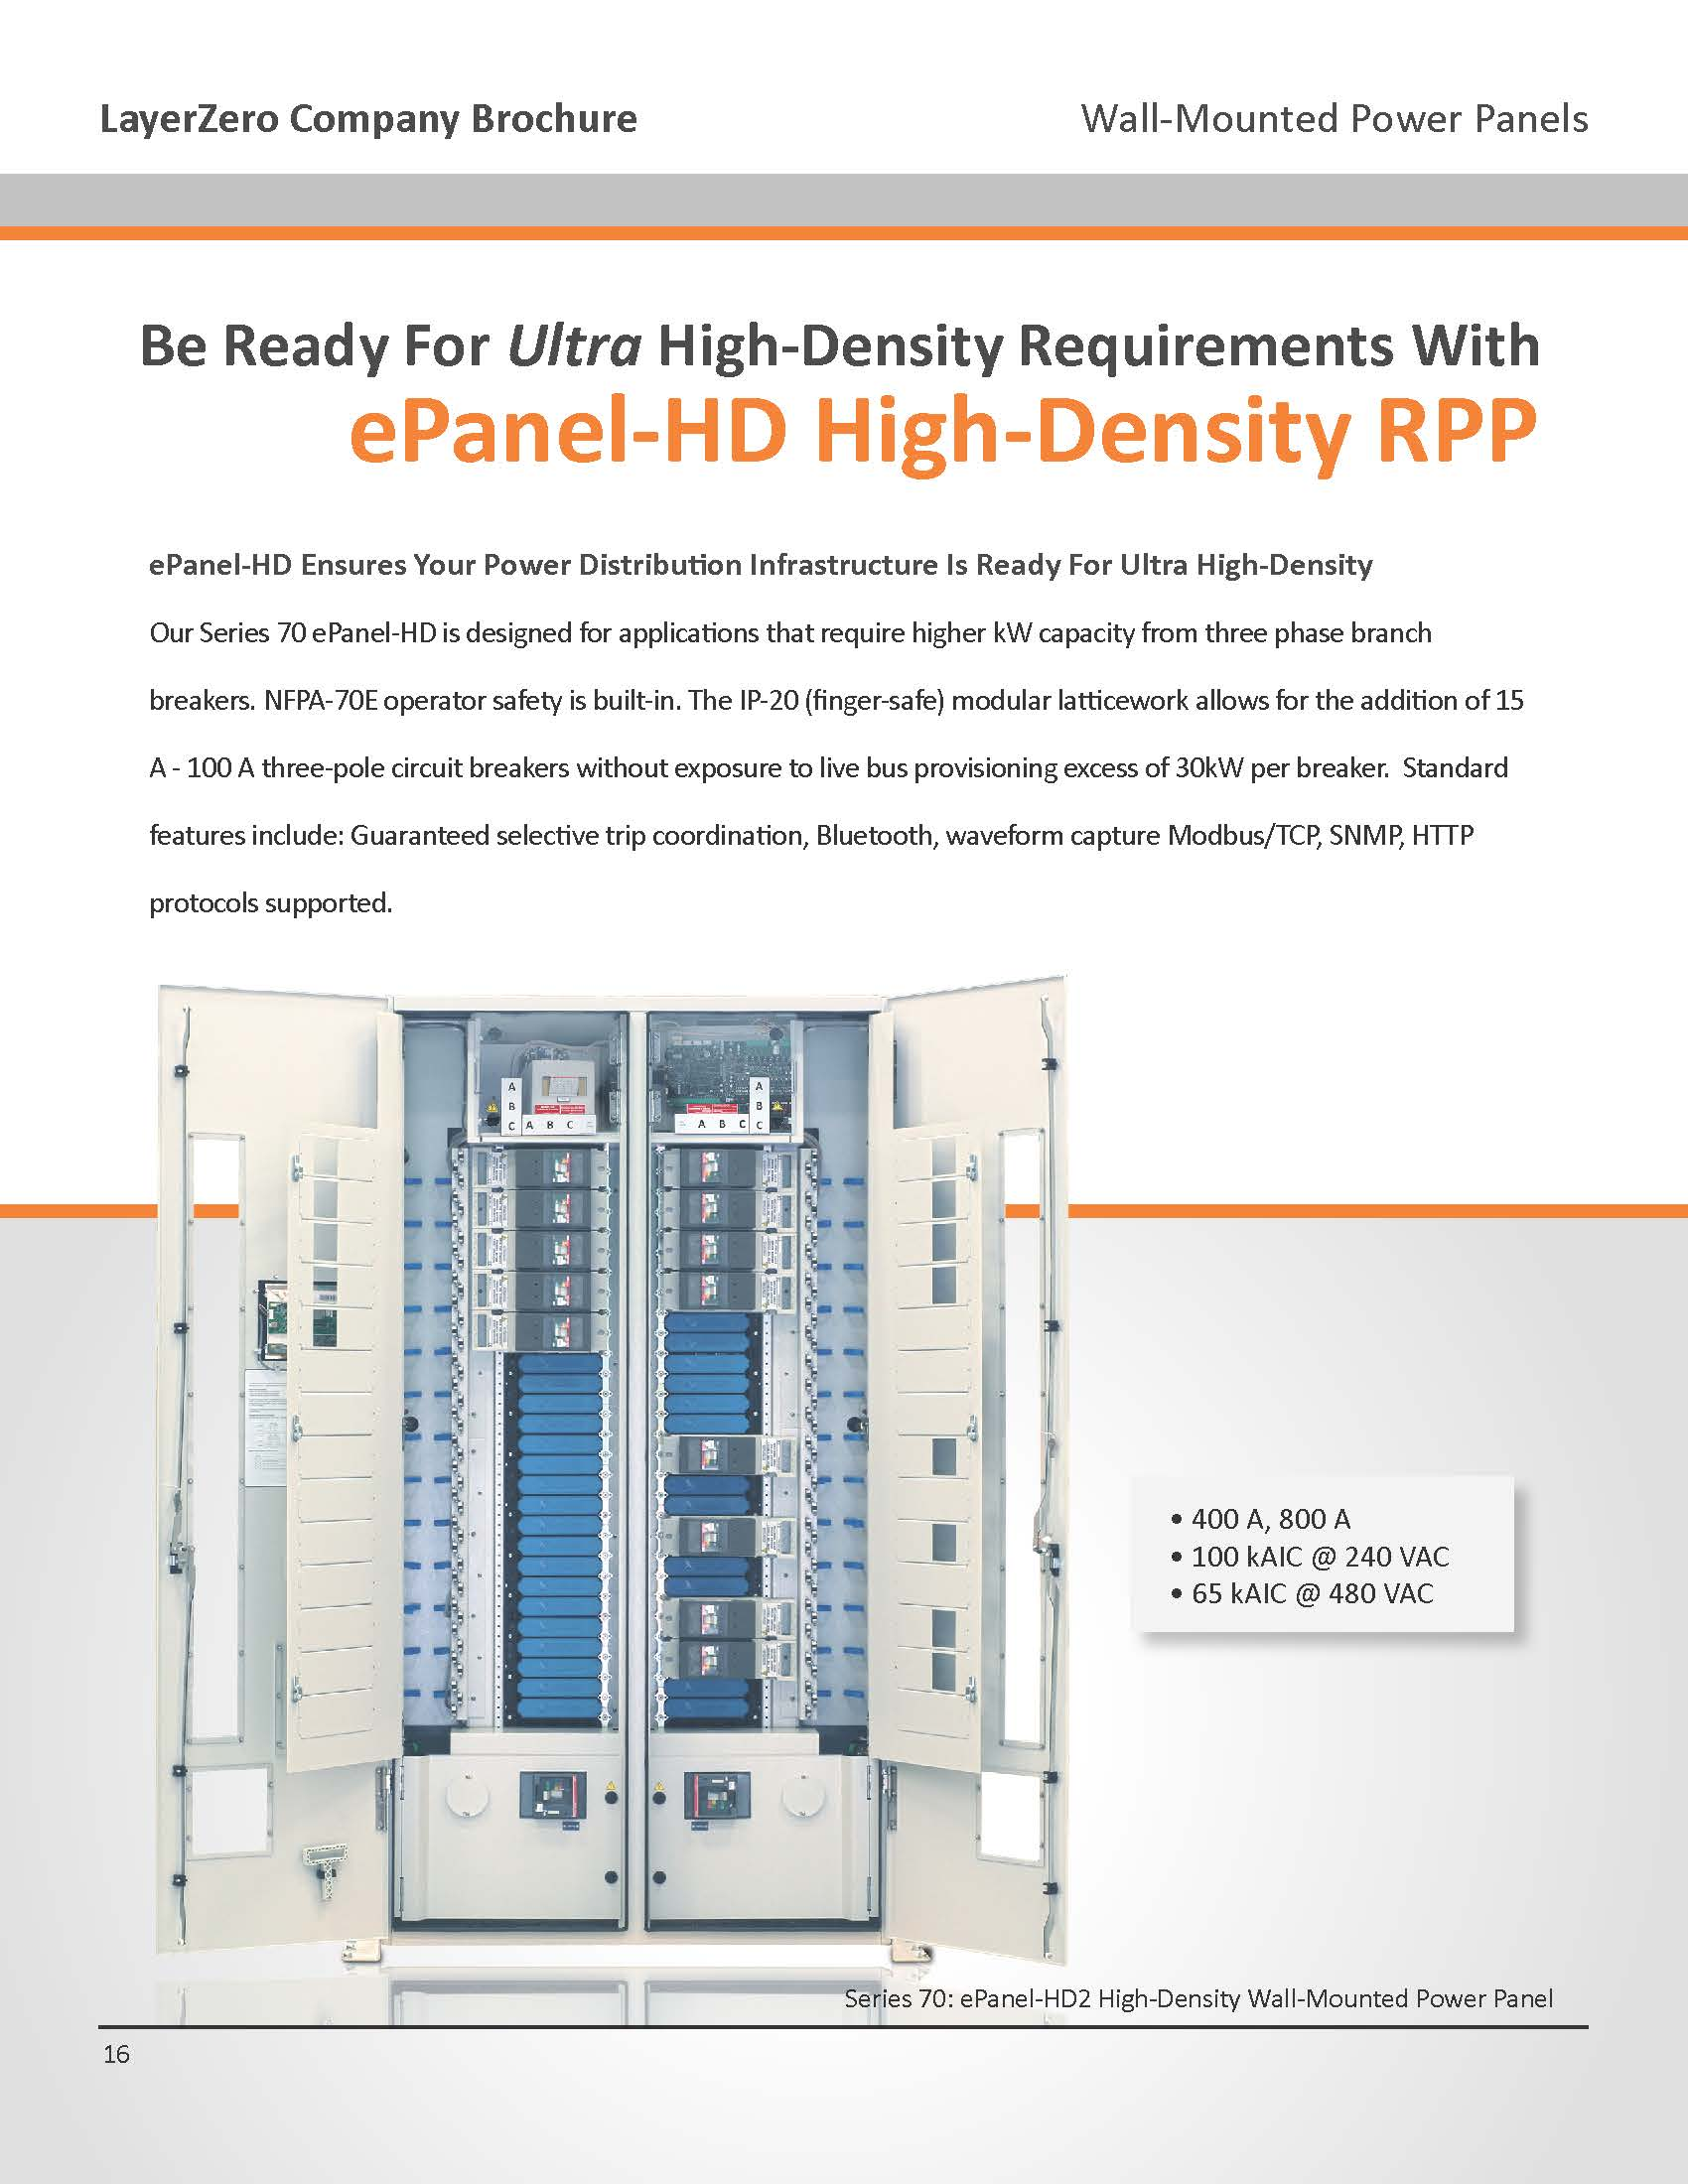 Download The LayerZero Power Systems Brochure